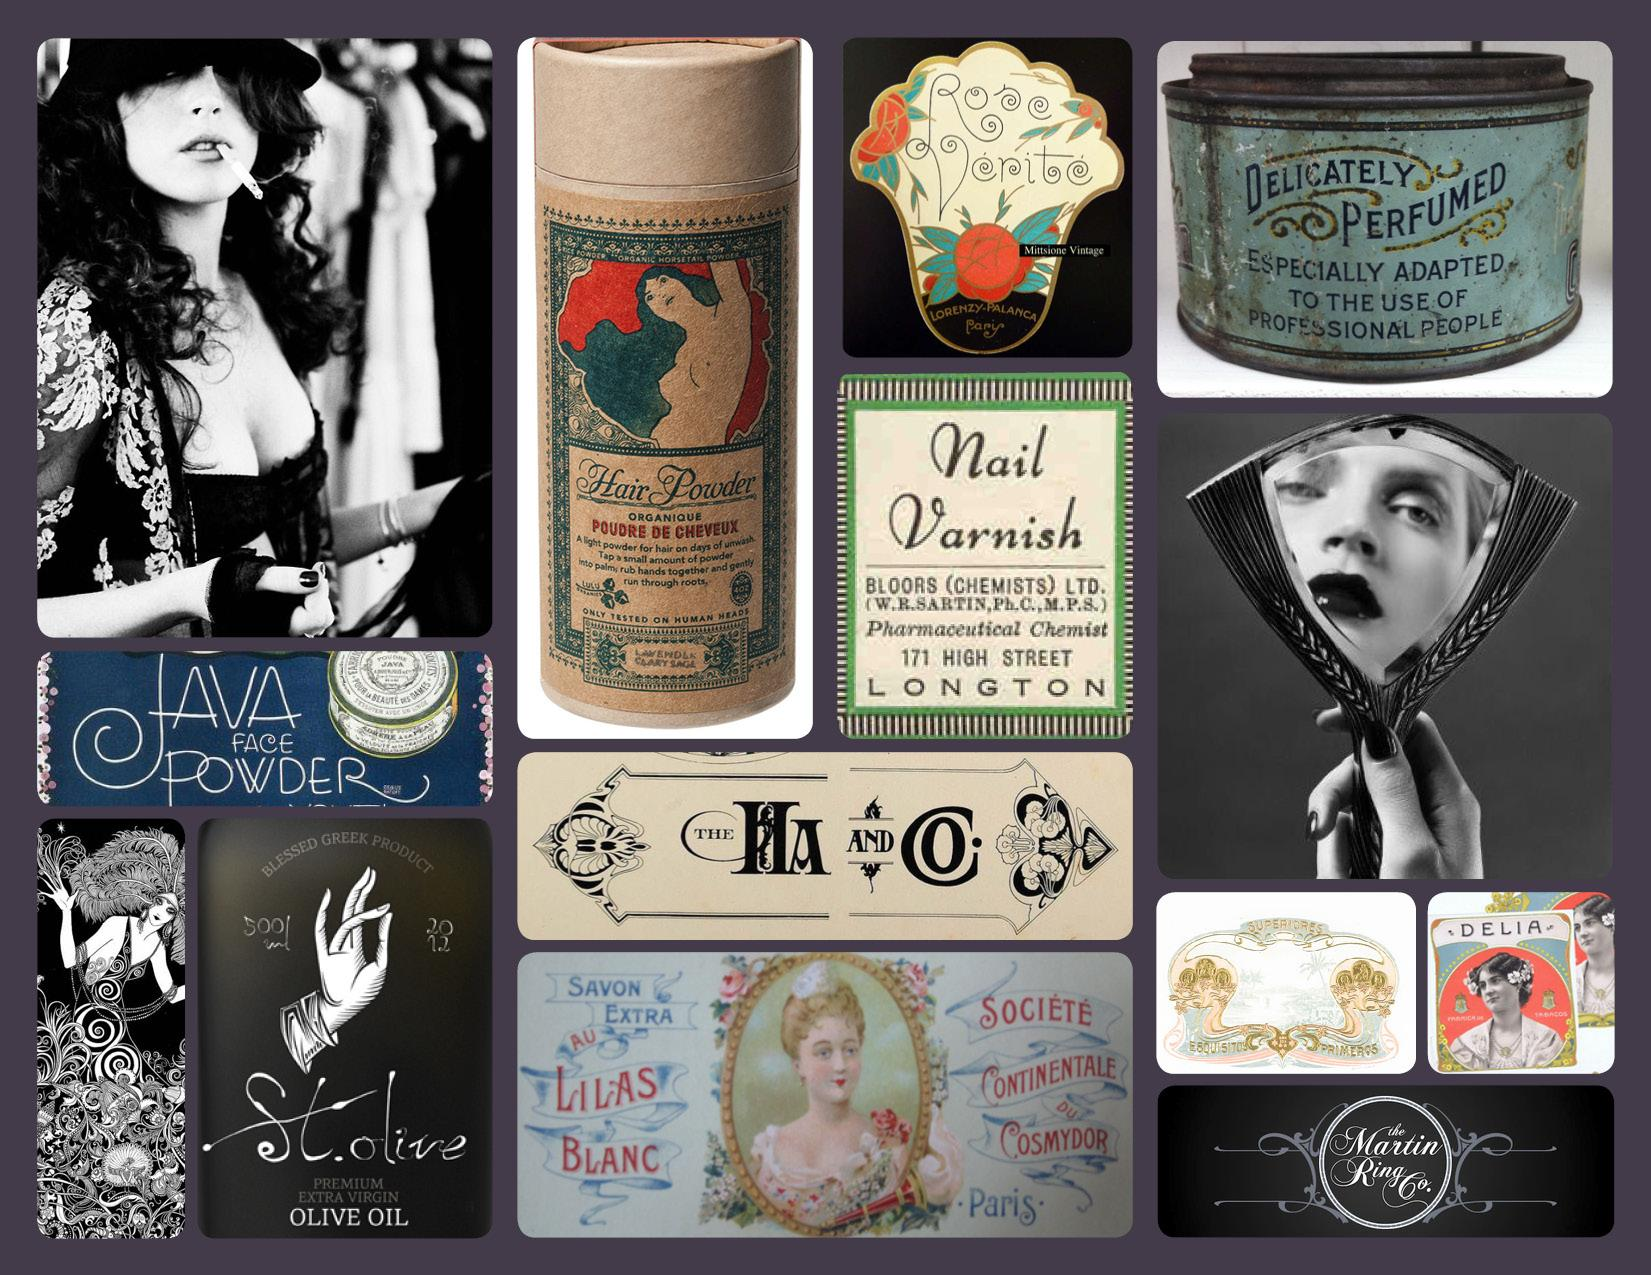 Lady B.Grey Candle Co. - image 2 - student project